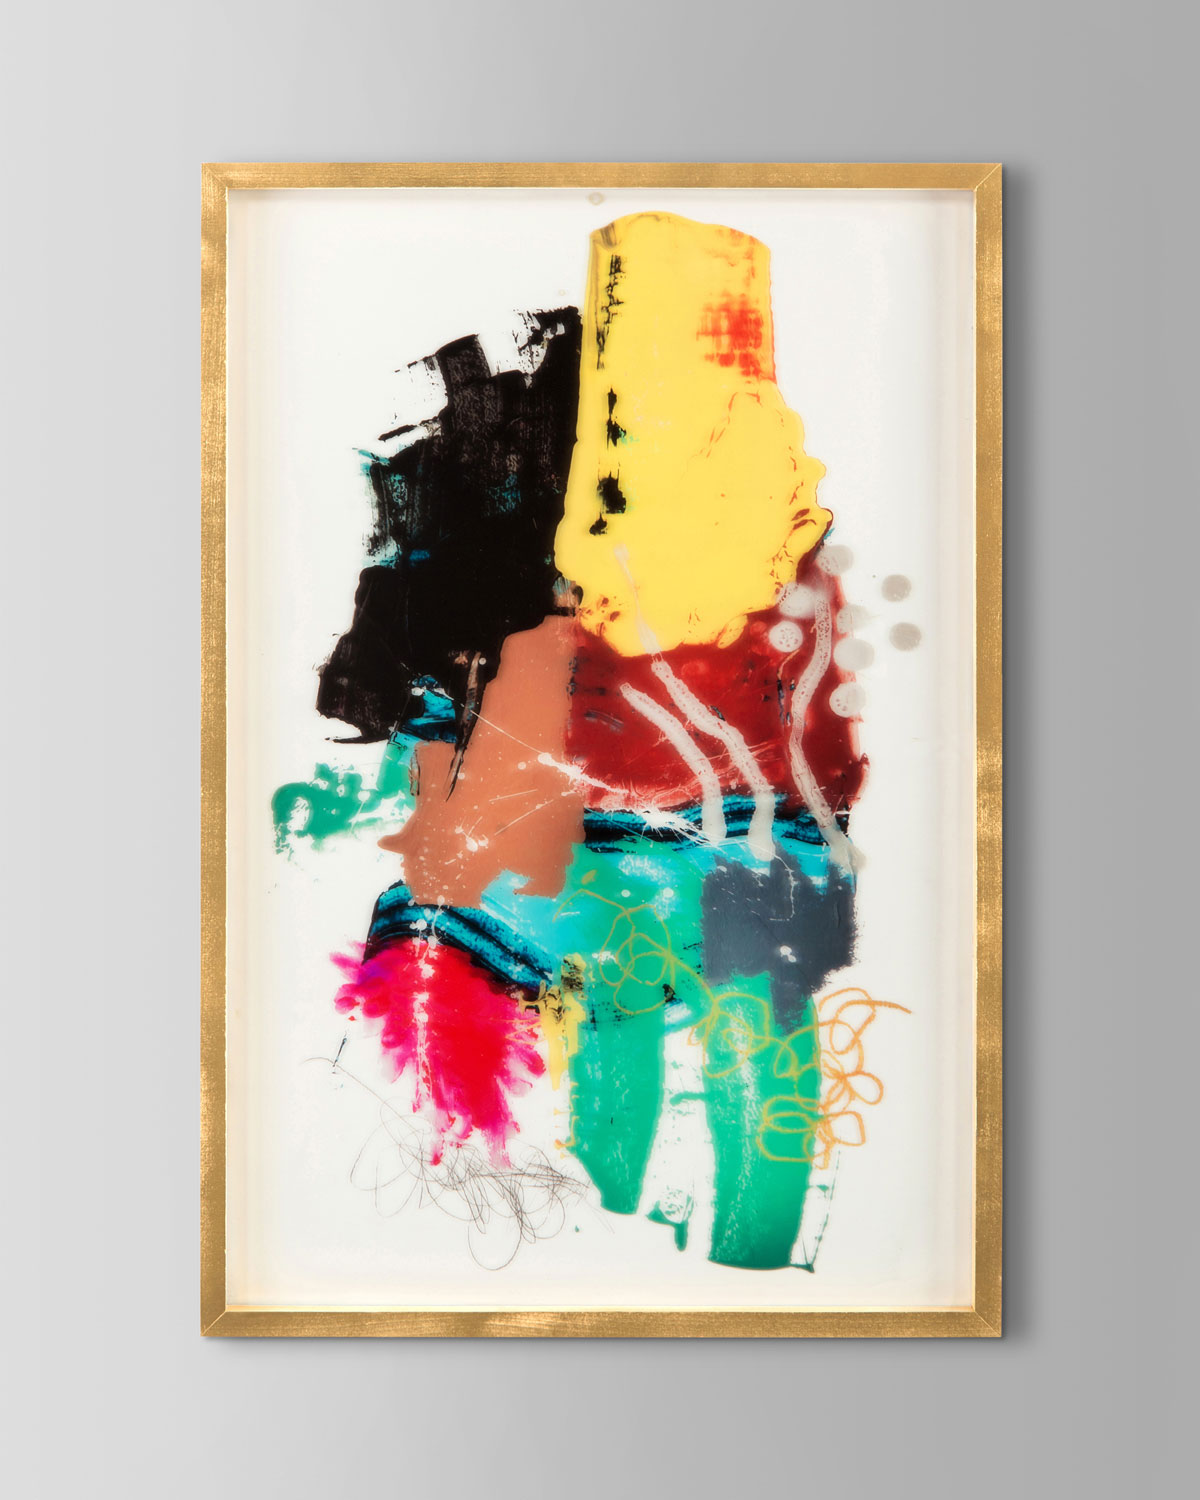 """Handcrafted gicle on acrylic by Jamie Hollis. Acrylic and wood. 25""""W x 2""""D x 37""""T. Made in the USA. Weight, 11 lbs. Boxed weight, approximately 19 lbs."""